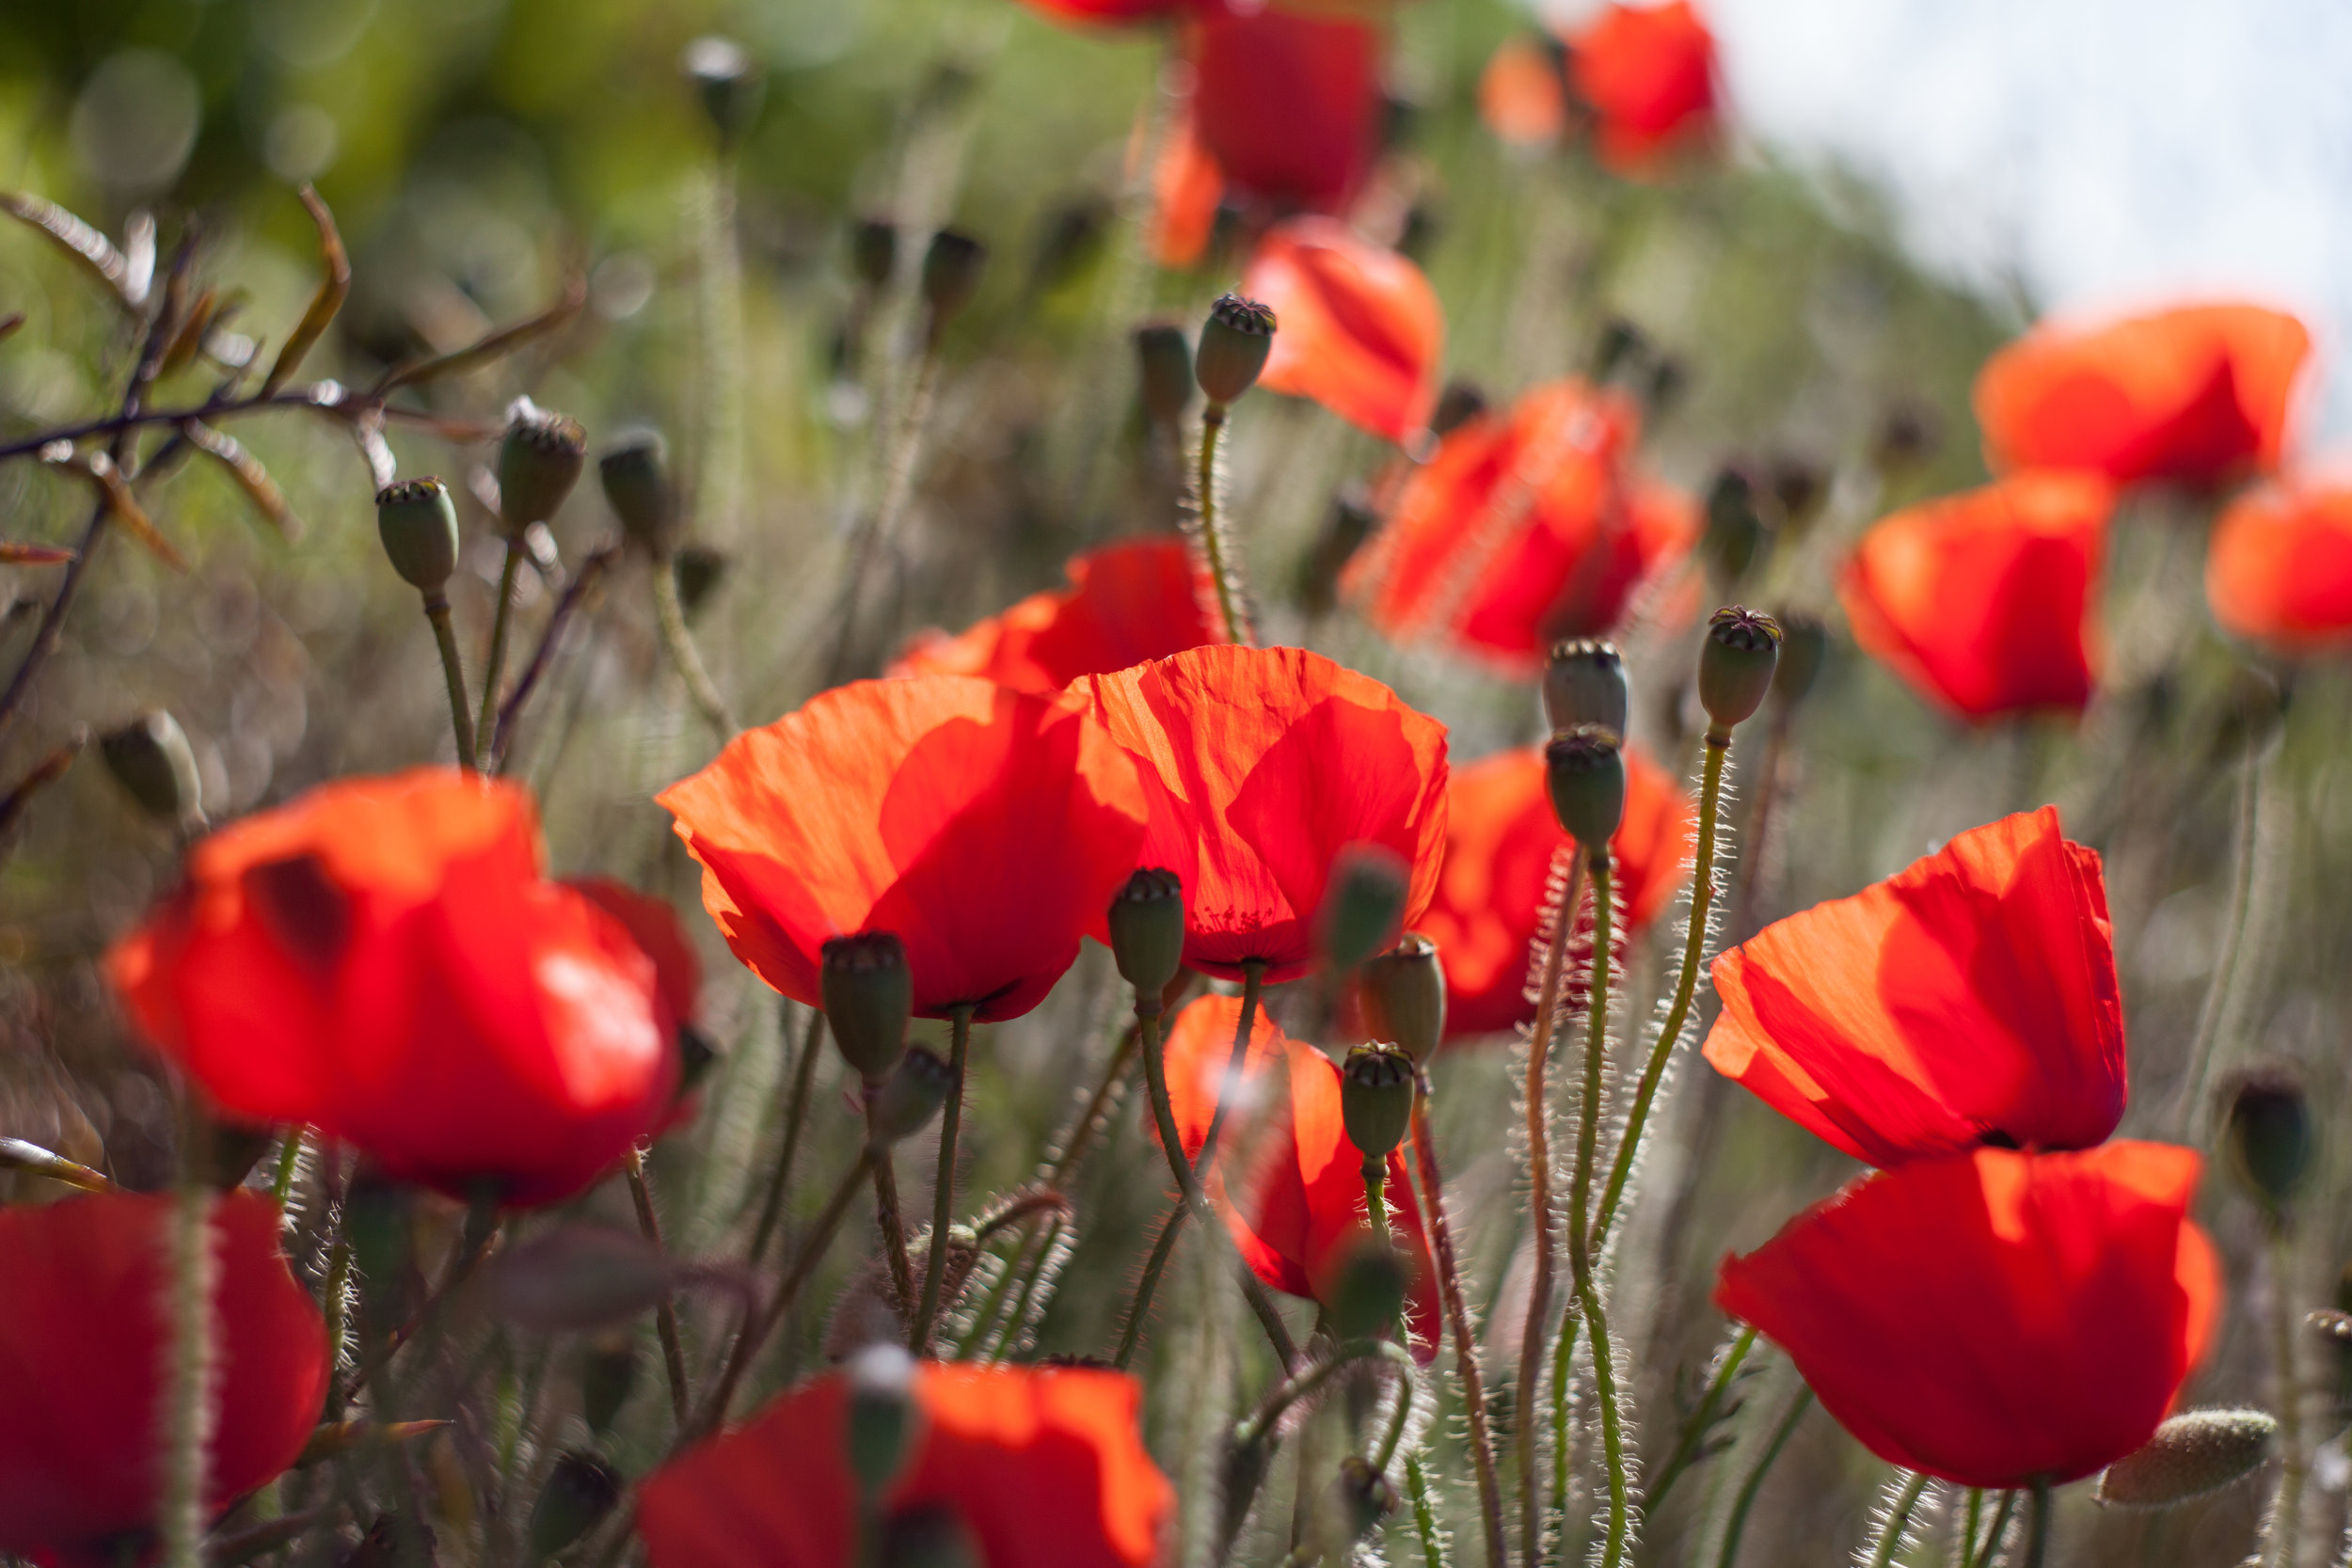 Beautiful wild poppies in England in this artistic nature photograph.